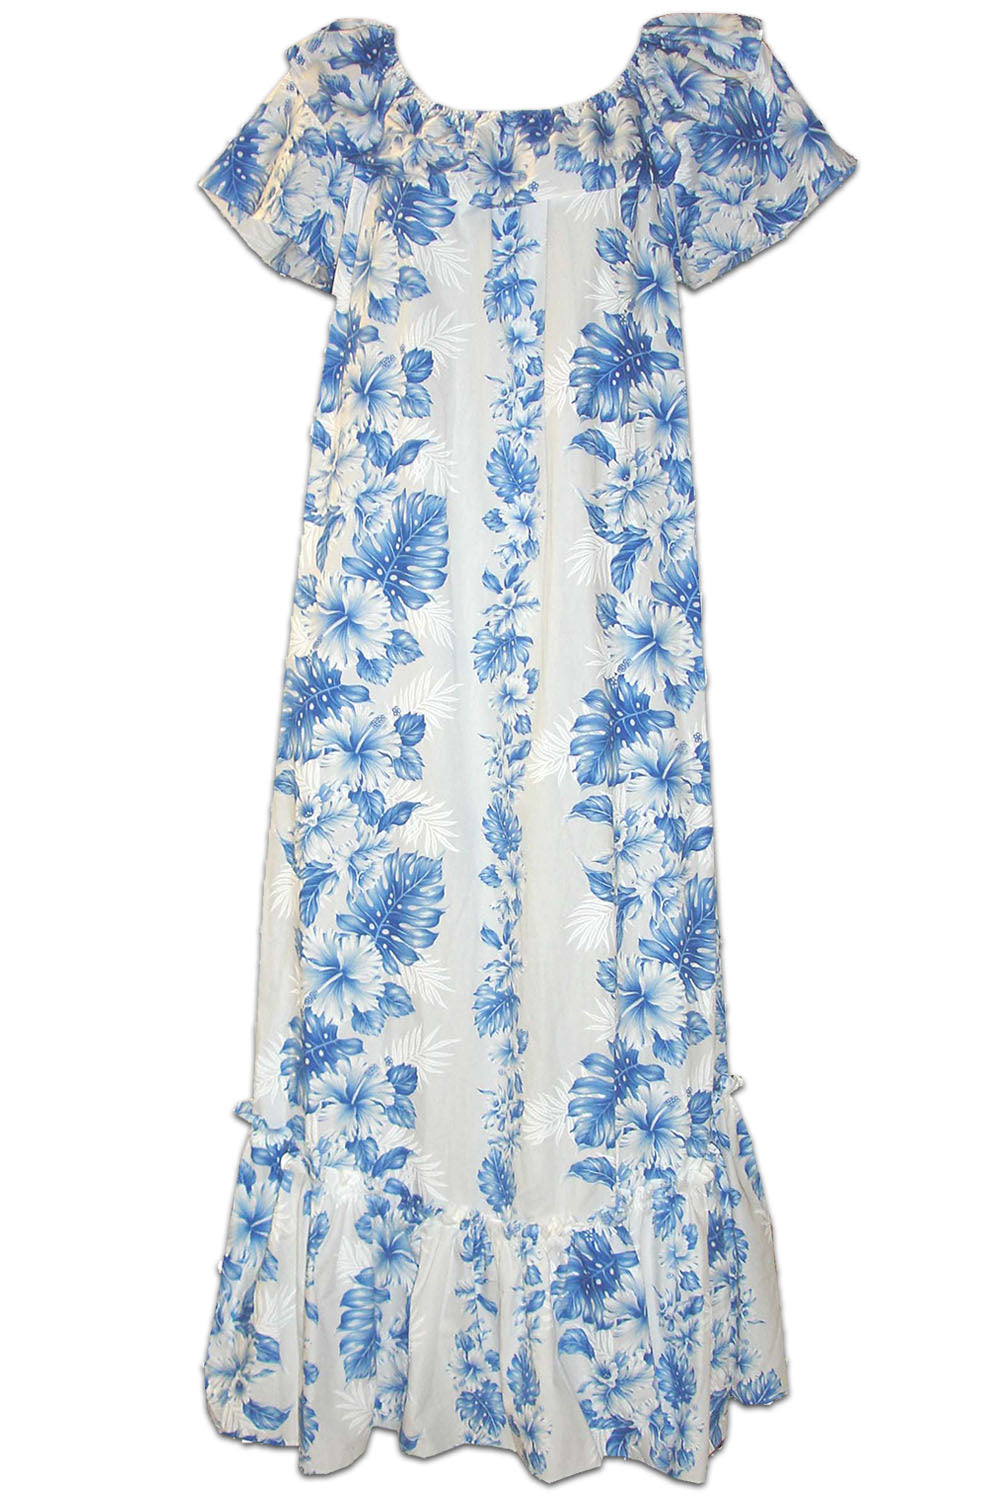 Royal Hibiscus White Short Sleeve Muumuu